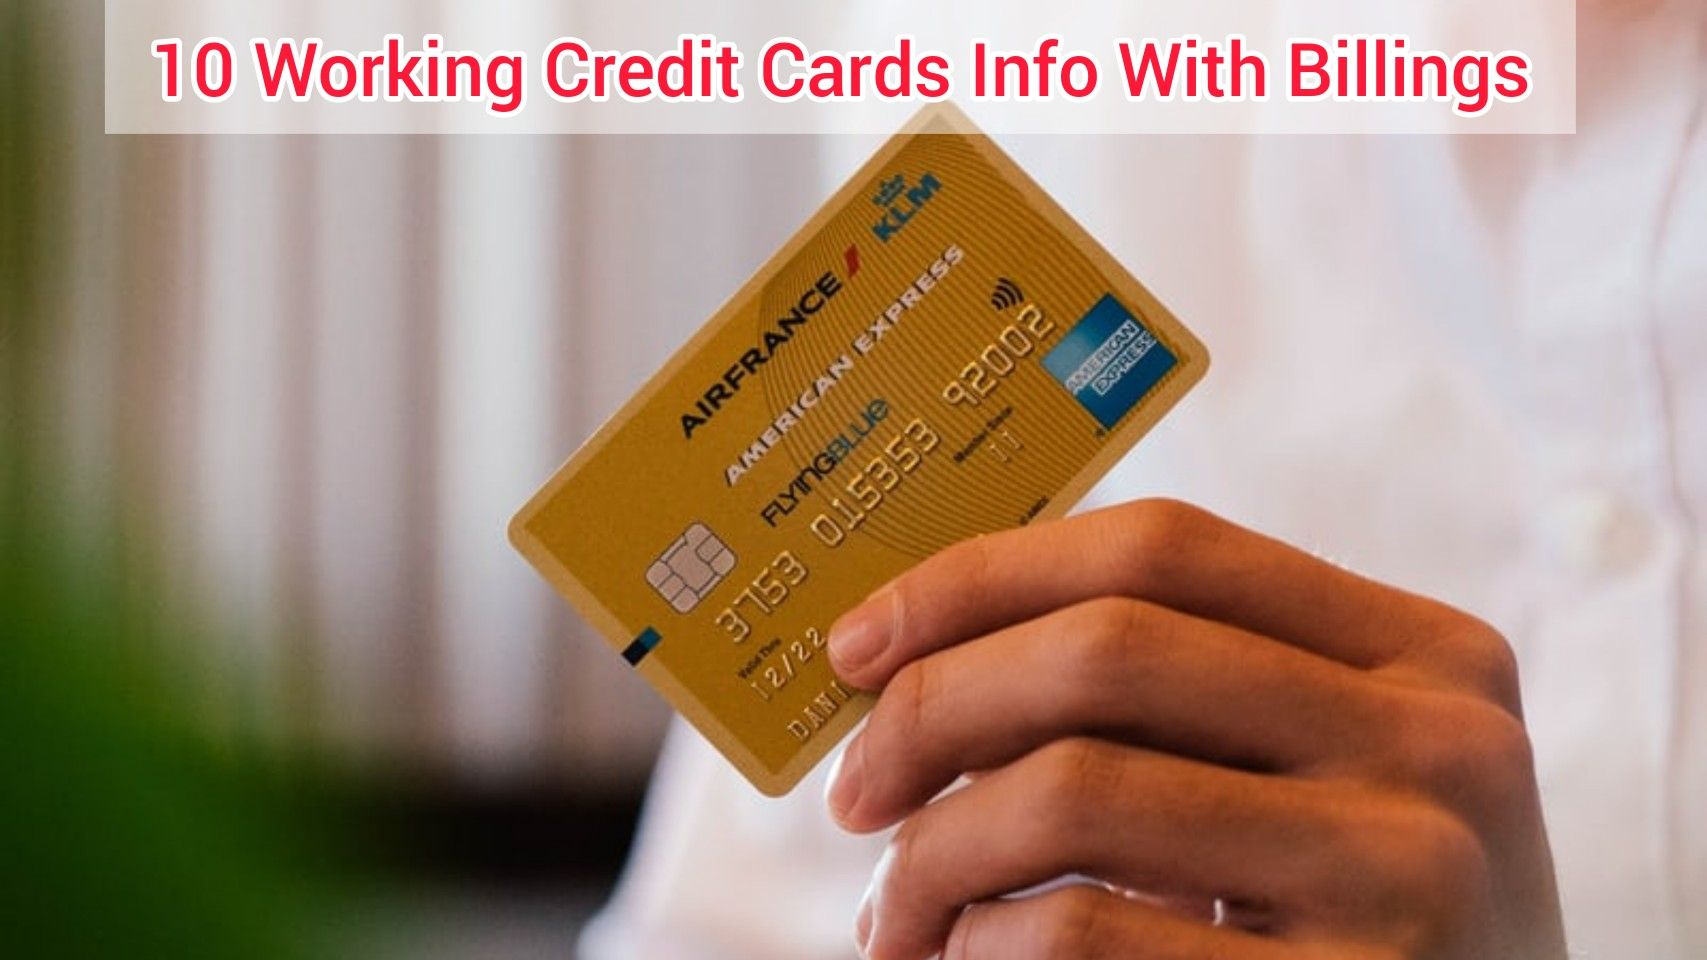 how to get working credit card numbers